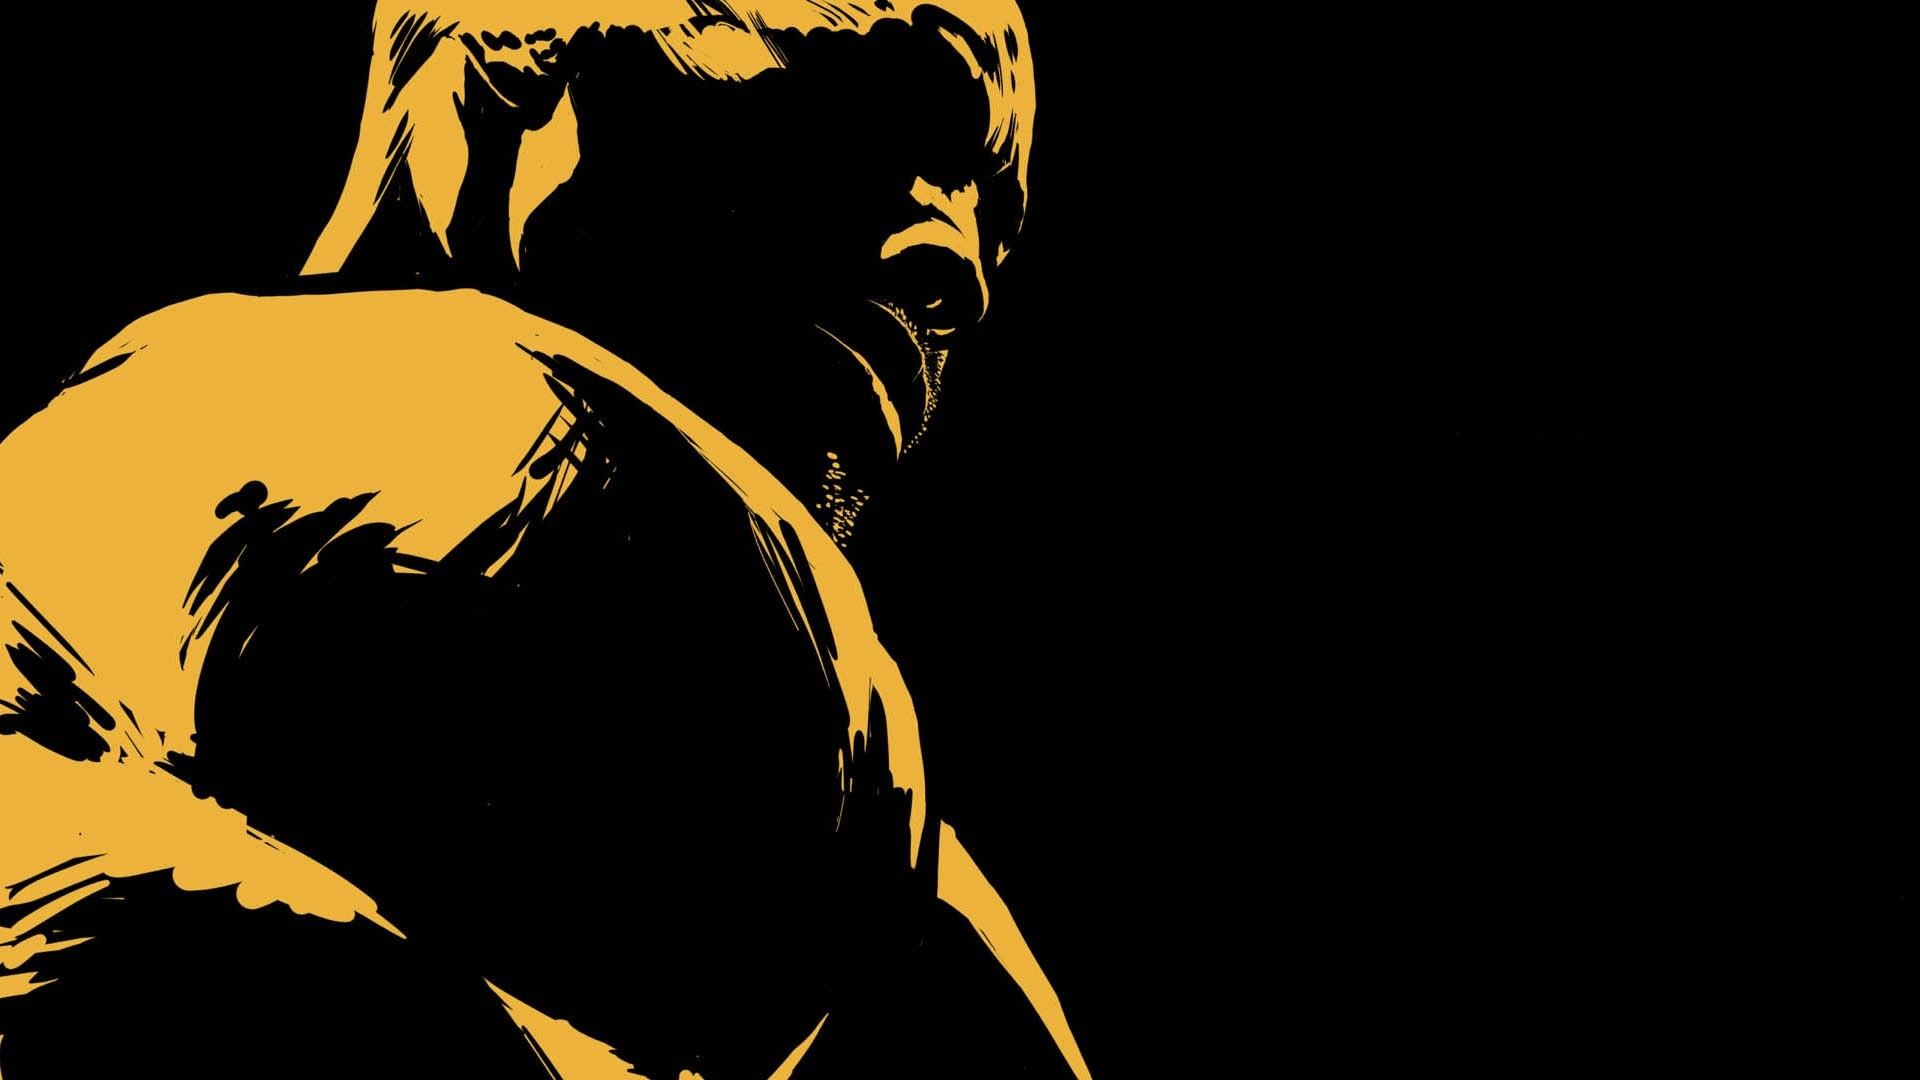 Luke Cage Wallpapers 1